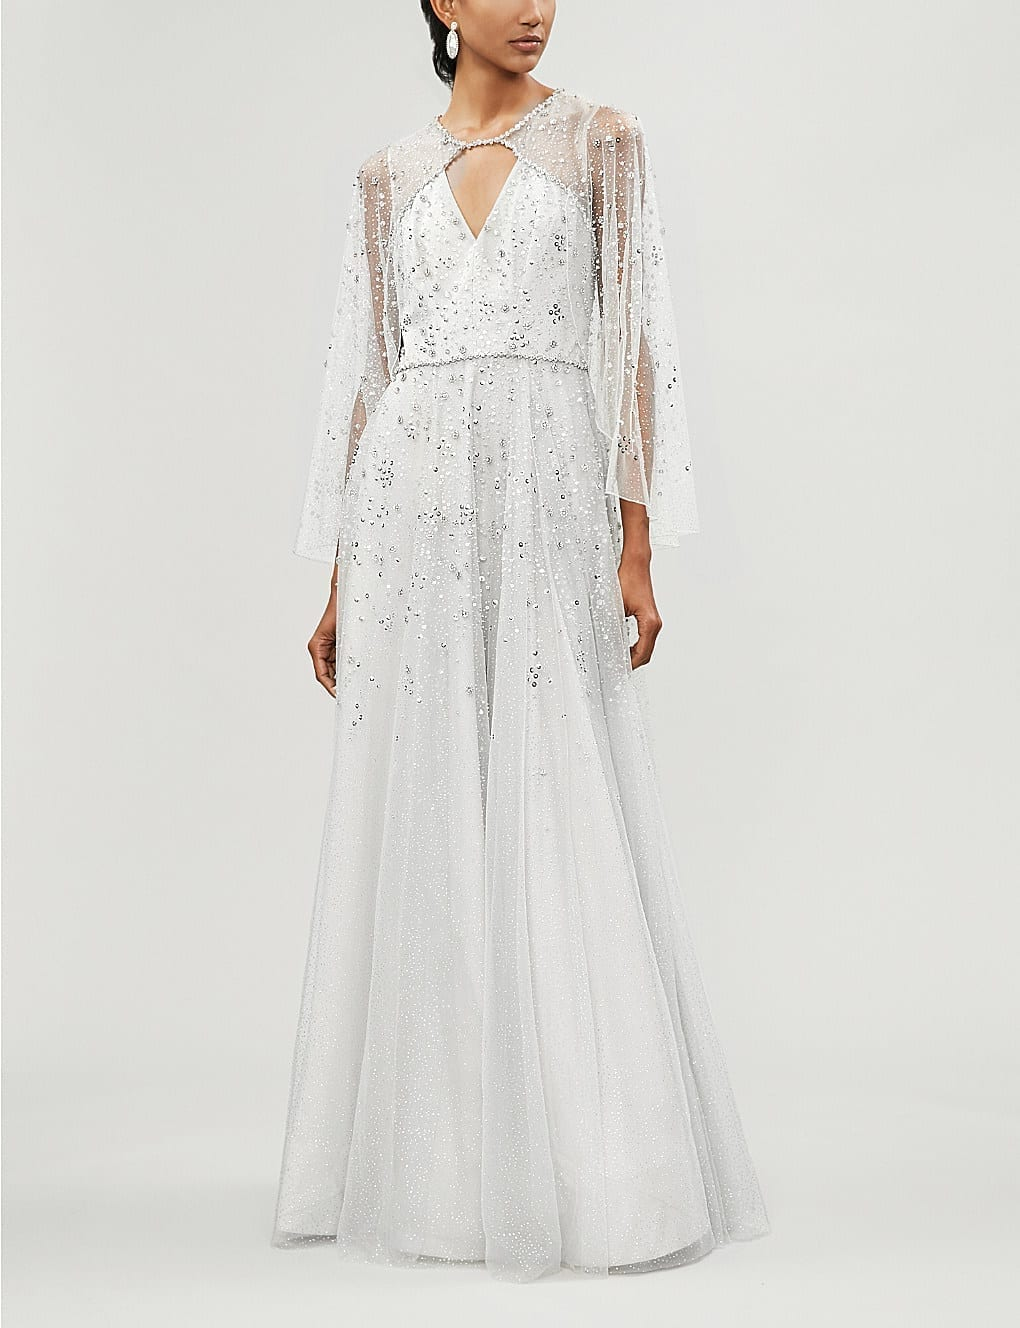 JENNY PACKHAM Windemere Embellished Tulle Snowdrop Gown